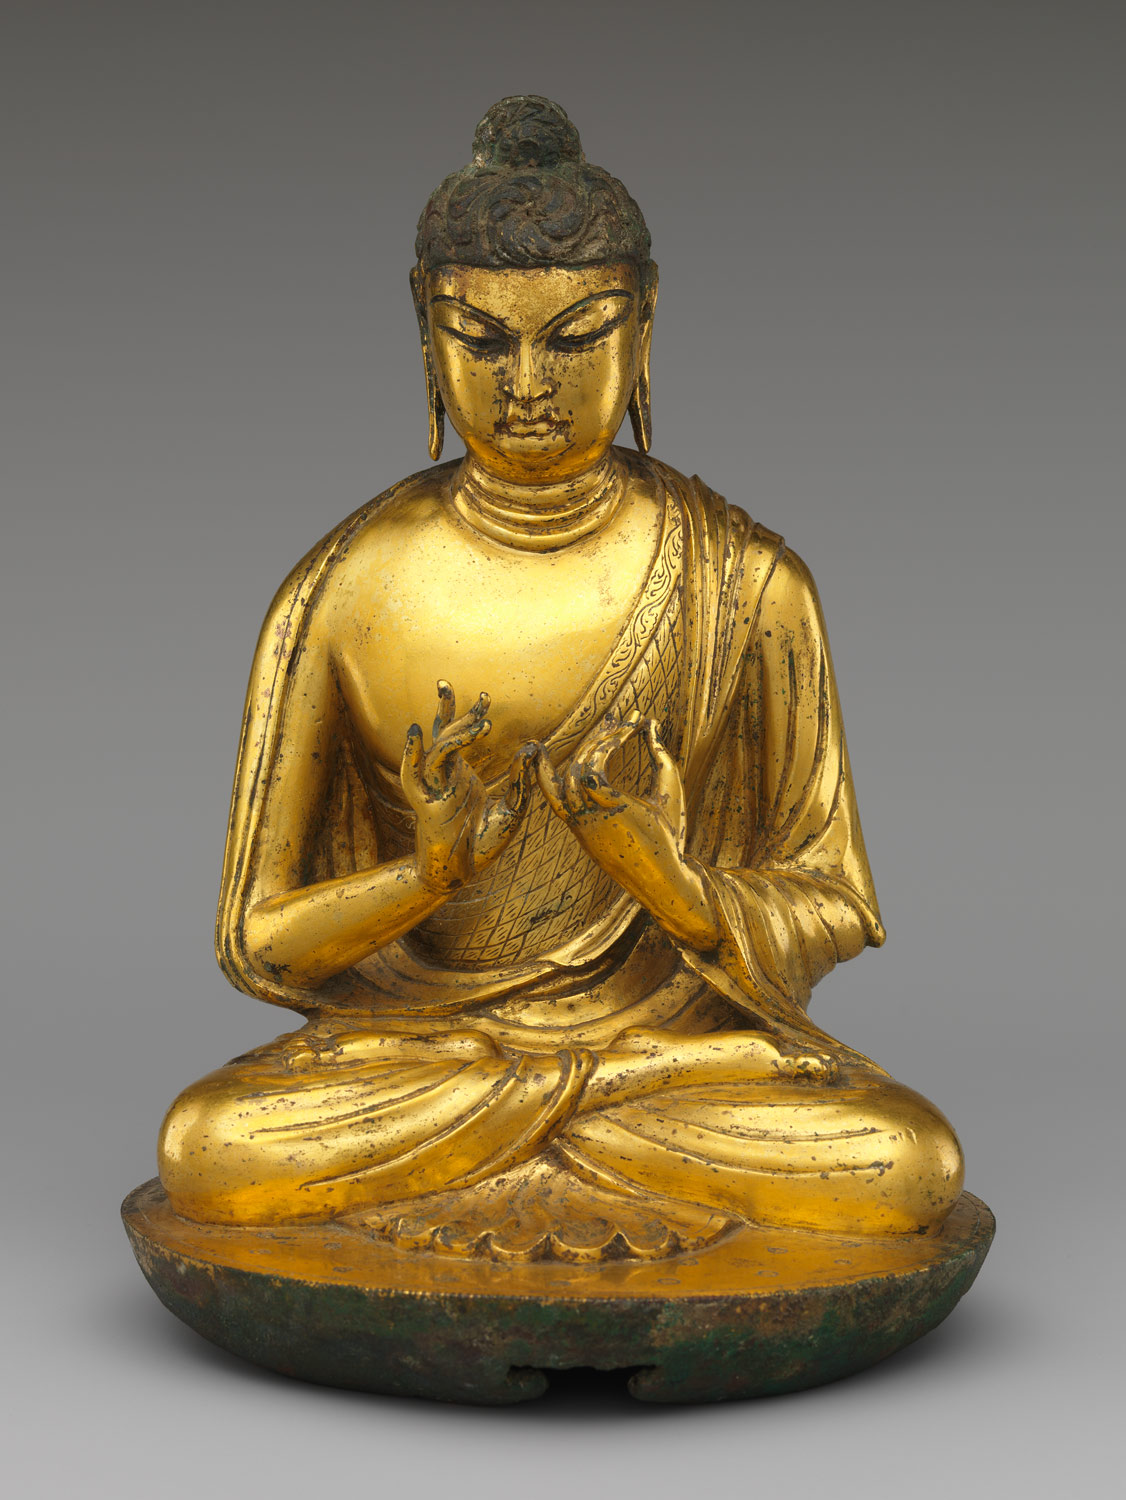 essay on meditation meditation the buddhist way unabridged naxos  chinese buddhist sculpture essay heilbrunn timeline of art buddha vairocana dari